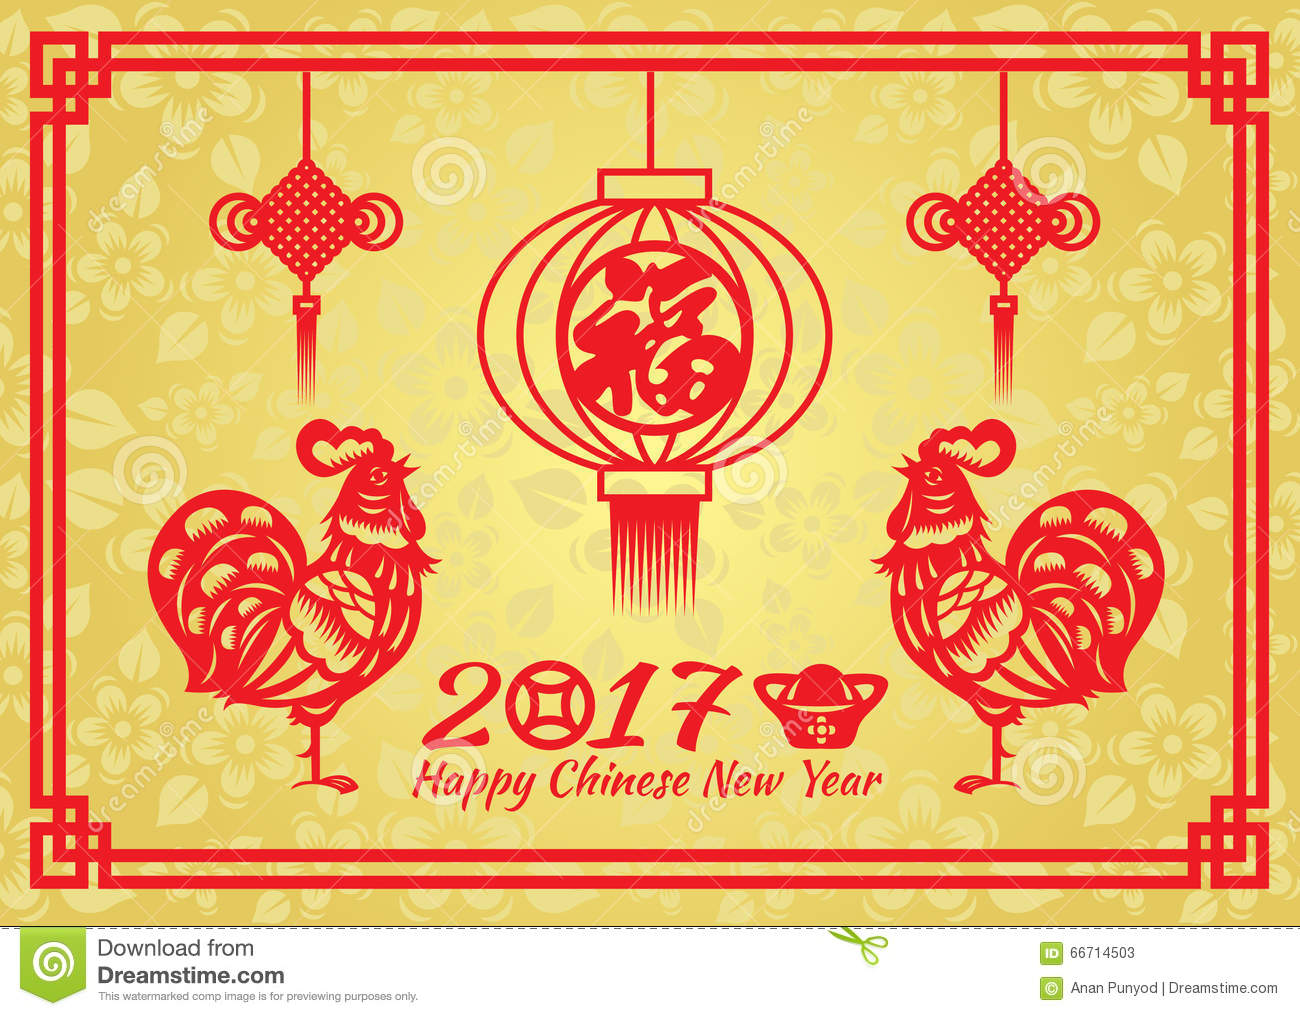 happy chinese new year 2017 card is chinese word mean happiness in lanterns knot money